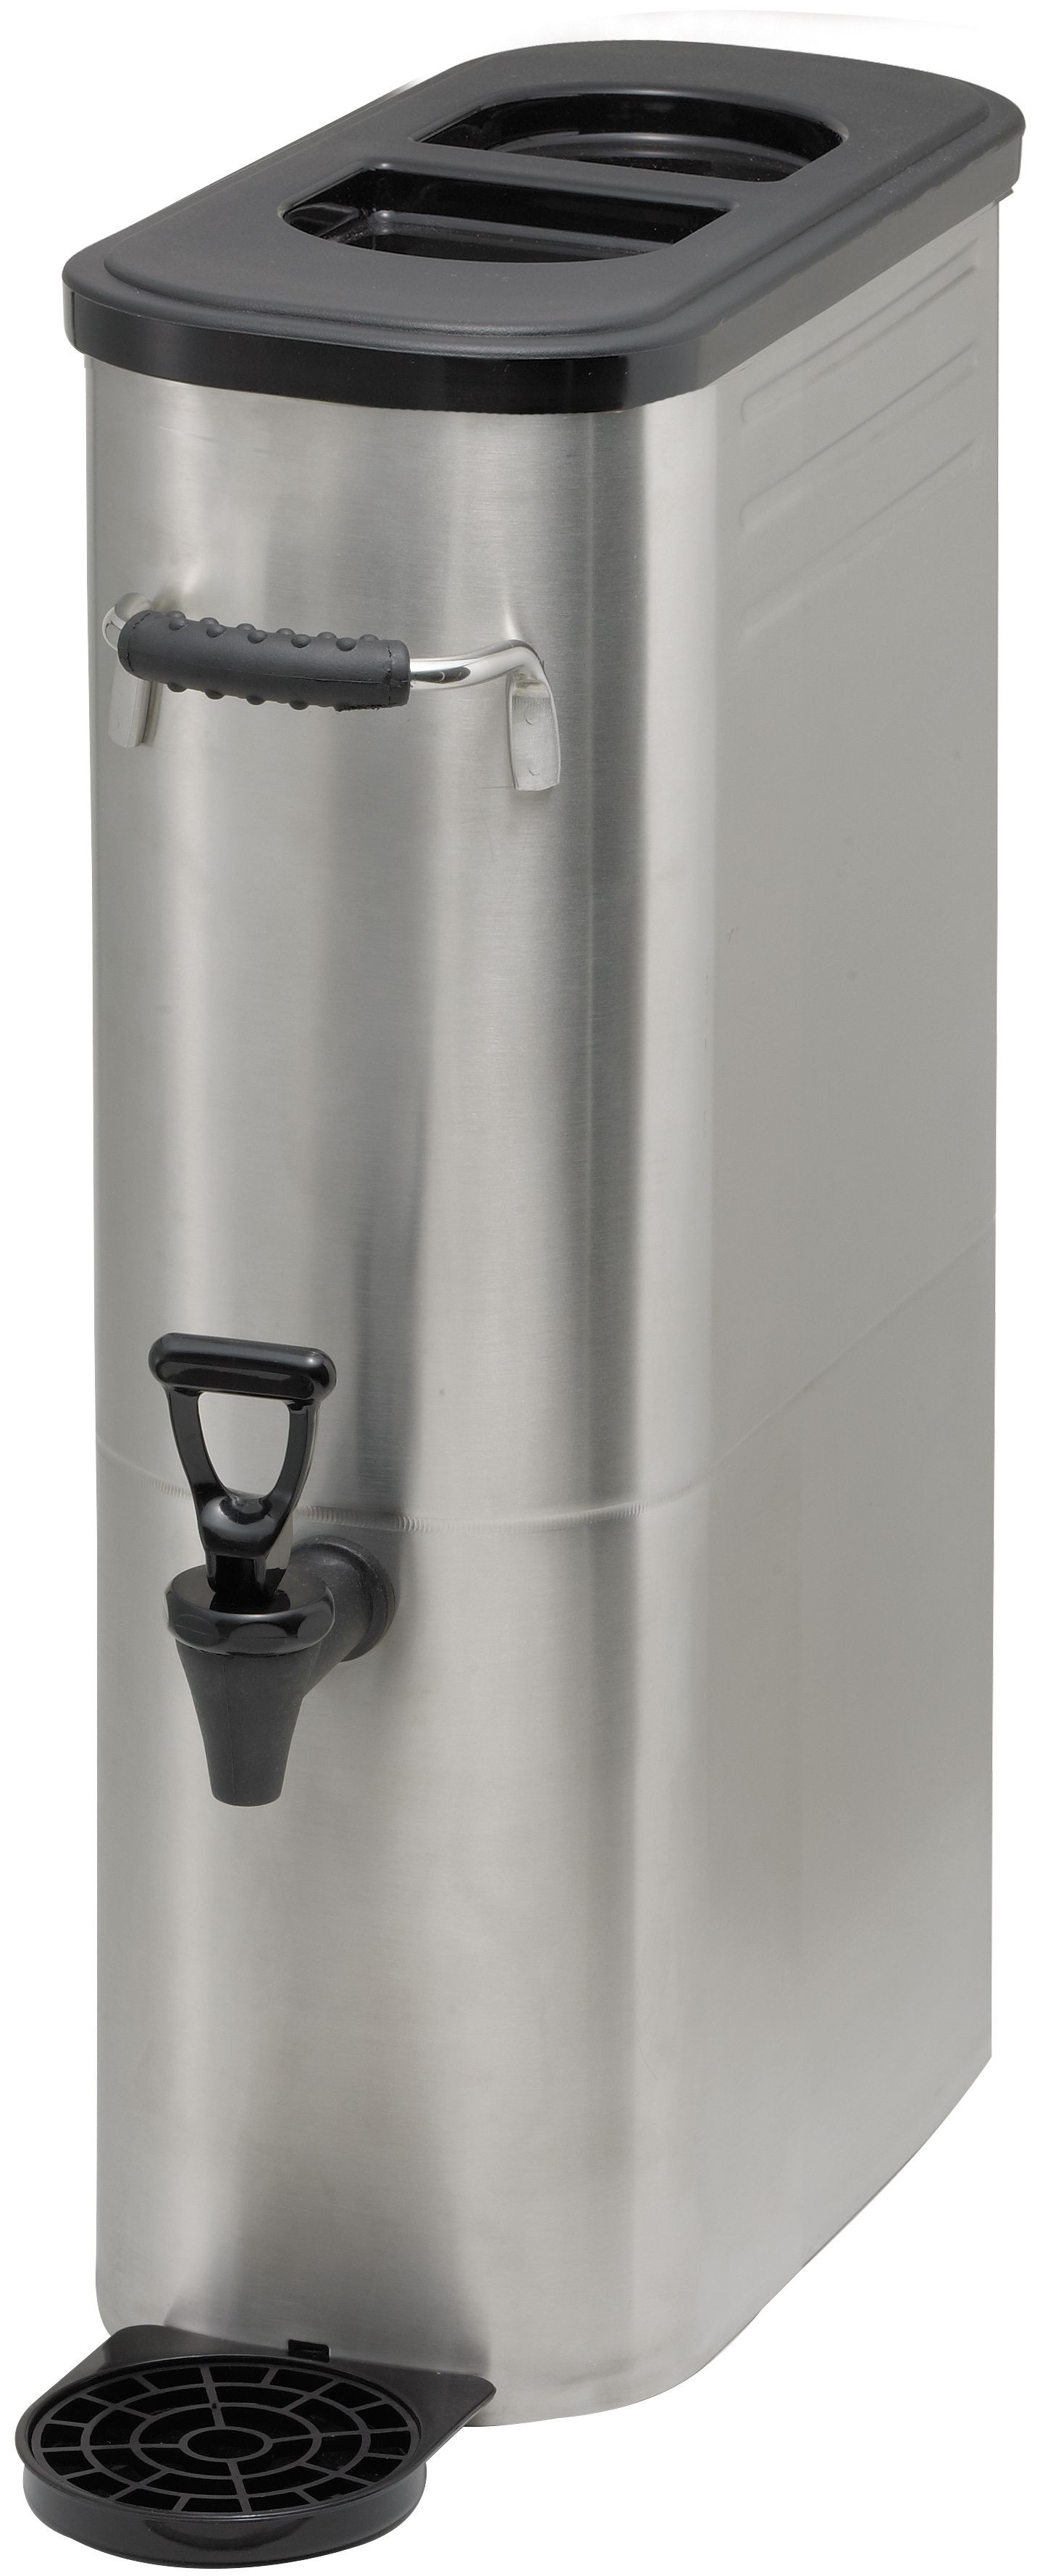 Stainless Steel Iced Tea Dispenser, 3 Gallons